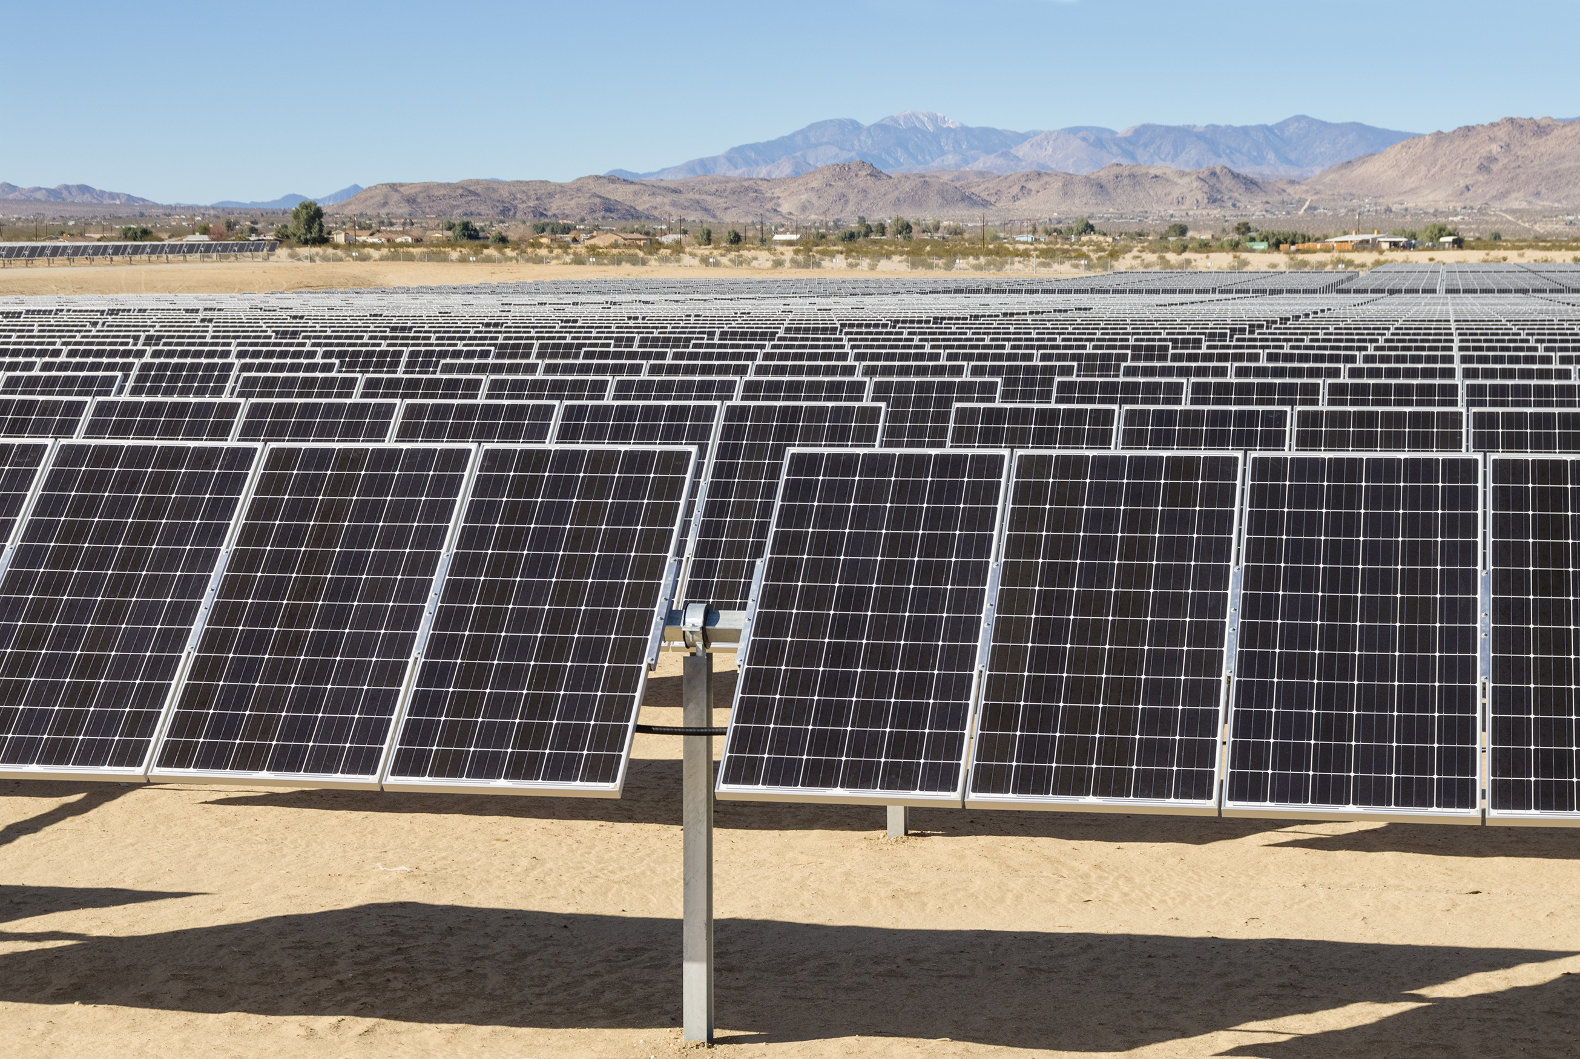 Chile's solar price hits record global low - at half the price of coal